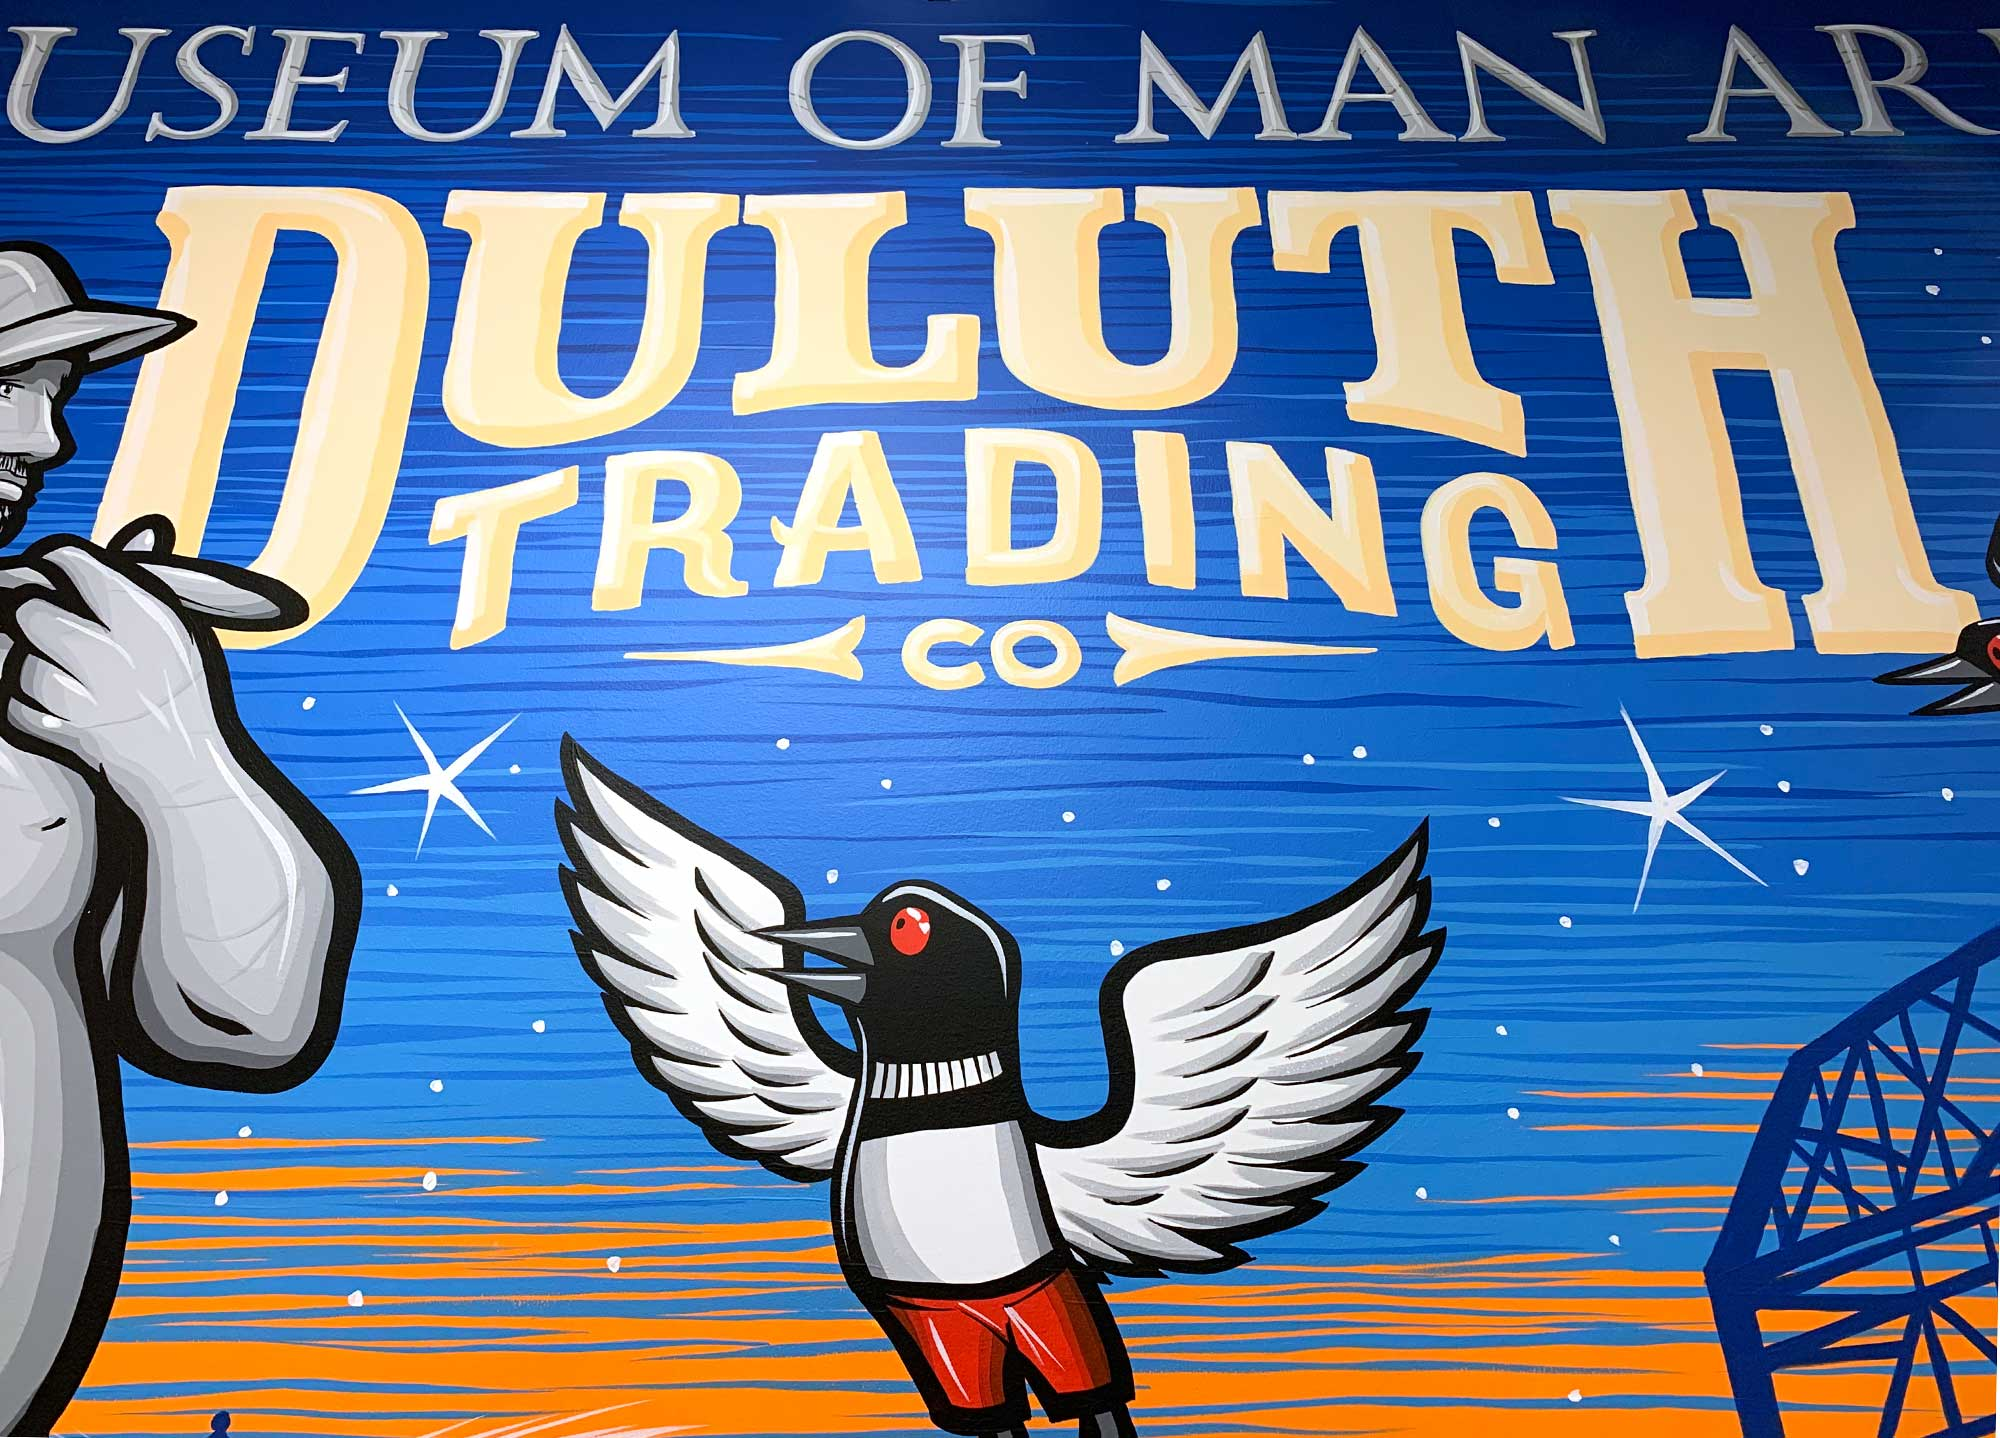 Duluth Trading Company Mall of America Logo Mural